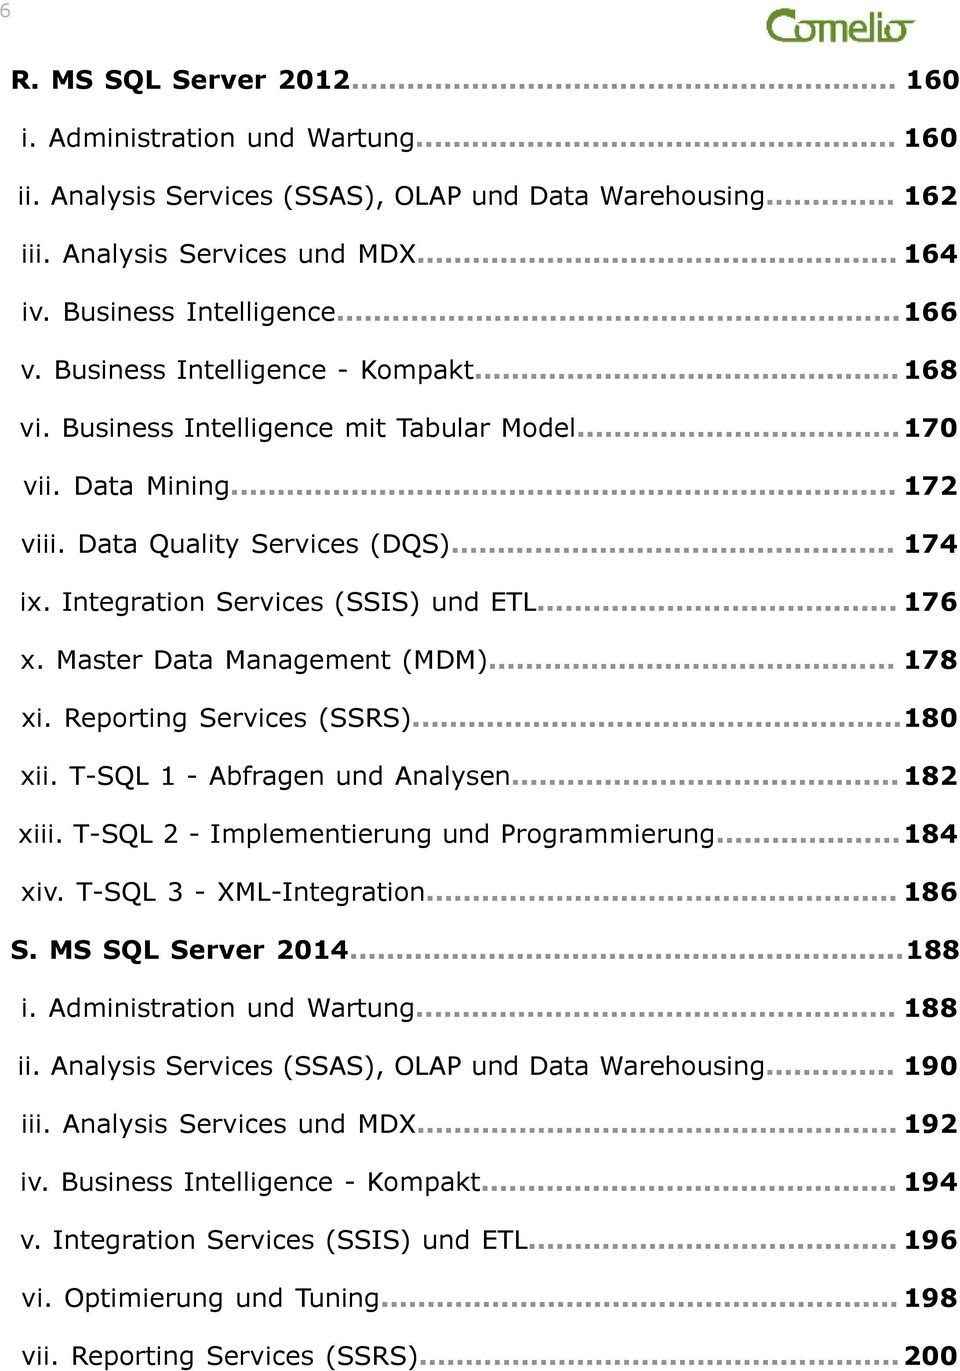 Integration Services (SSIS) und ETL... 176 x. Master Data Management (MDM)... 178 xi. Reporting Services (SSRS)...180 xii. T-SQL 1 - Abfragen und Analysen...182 xiii.